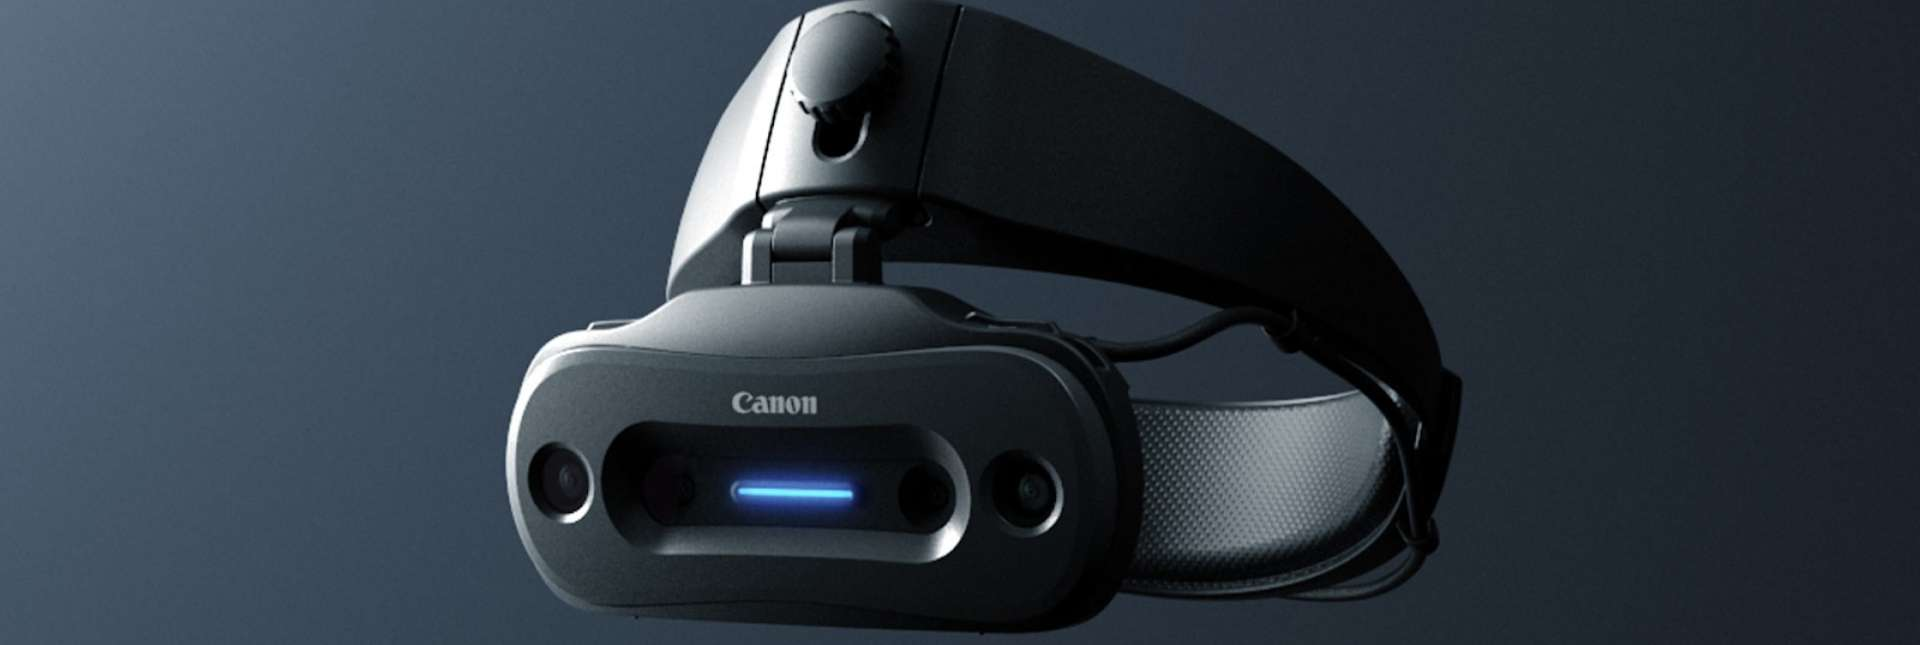 Canon Releases Details of Their Stunning New Mixed Reality Headset